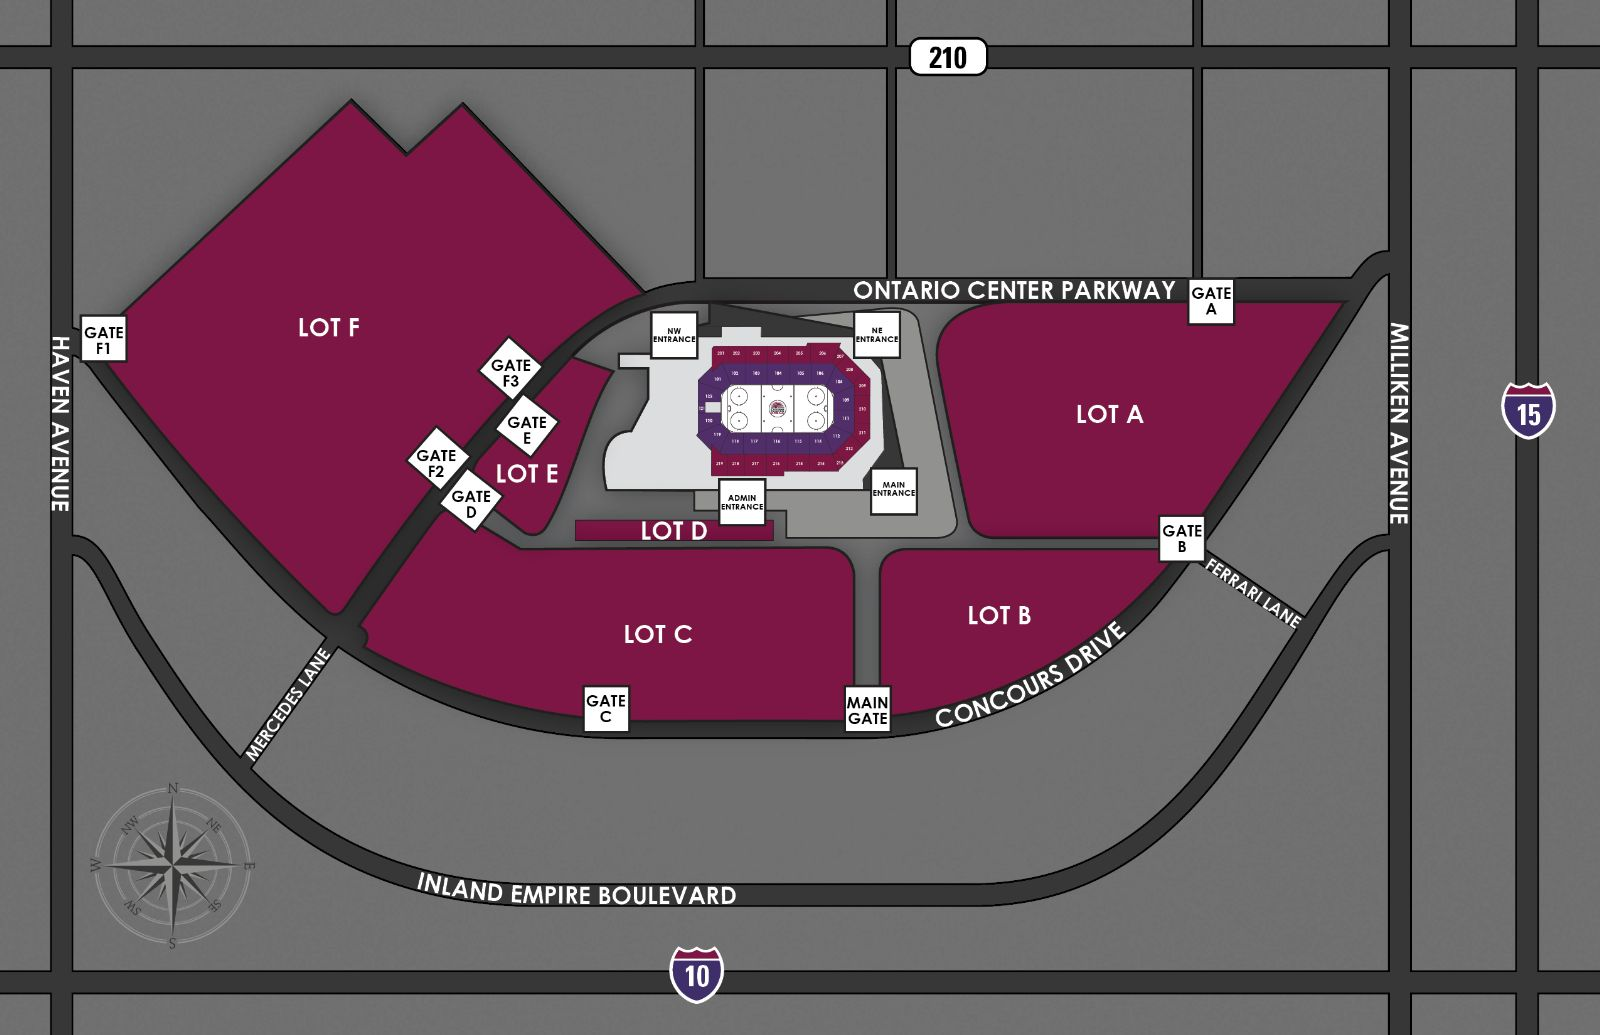 Parking Guide Citizens Business Bank Arena - Parking map us bank stadium